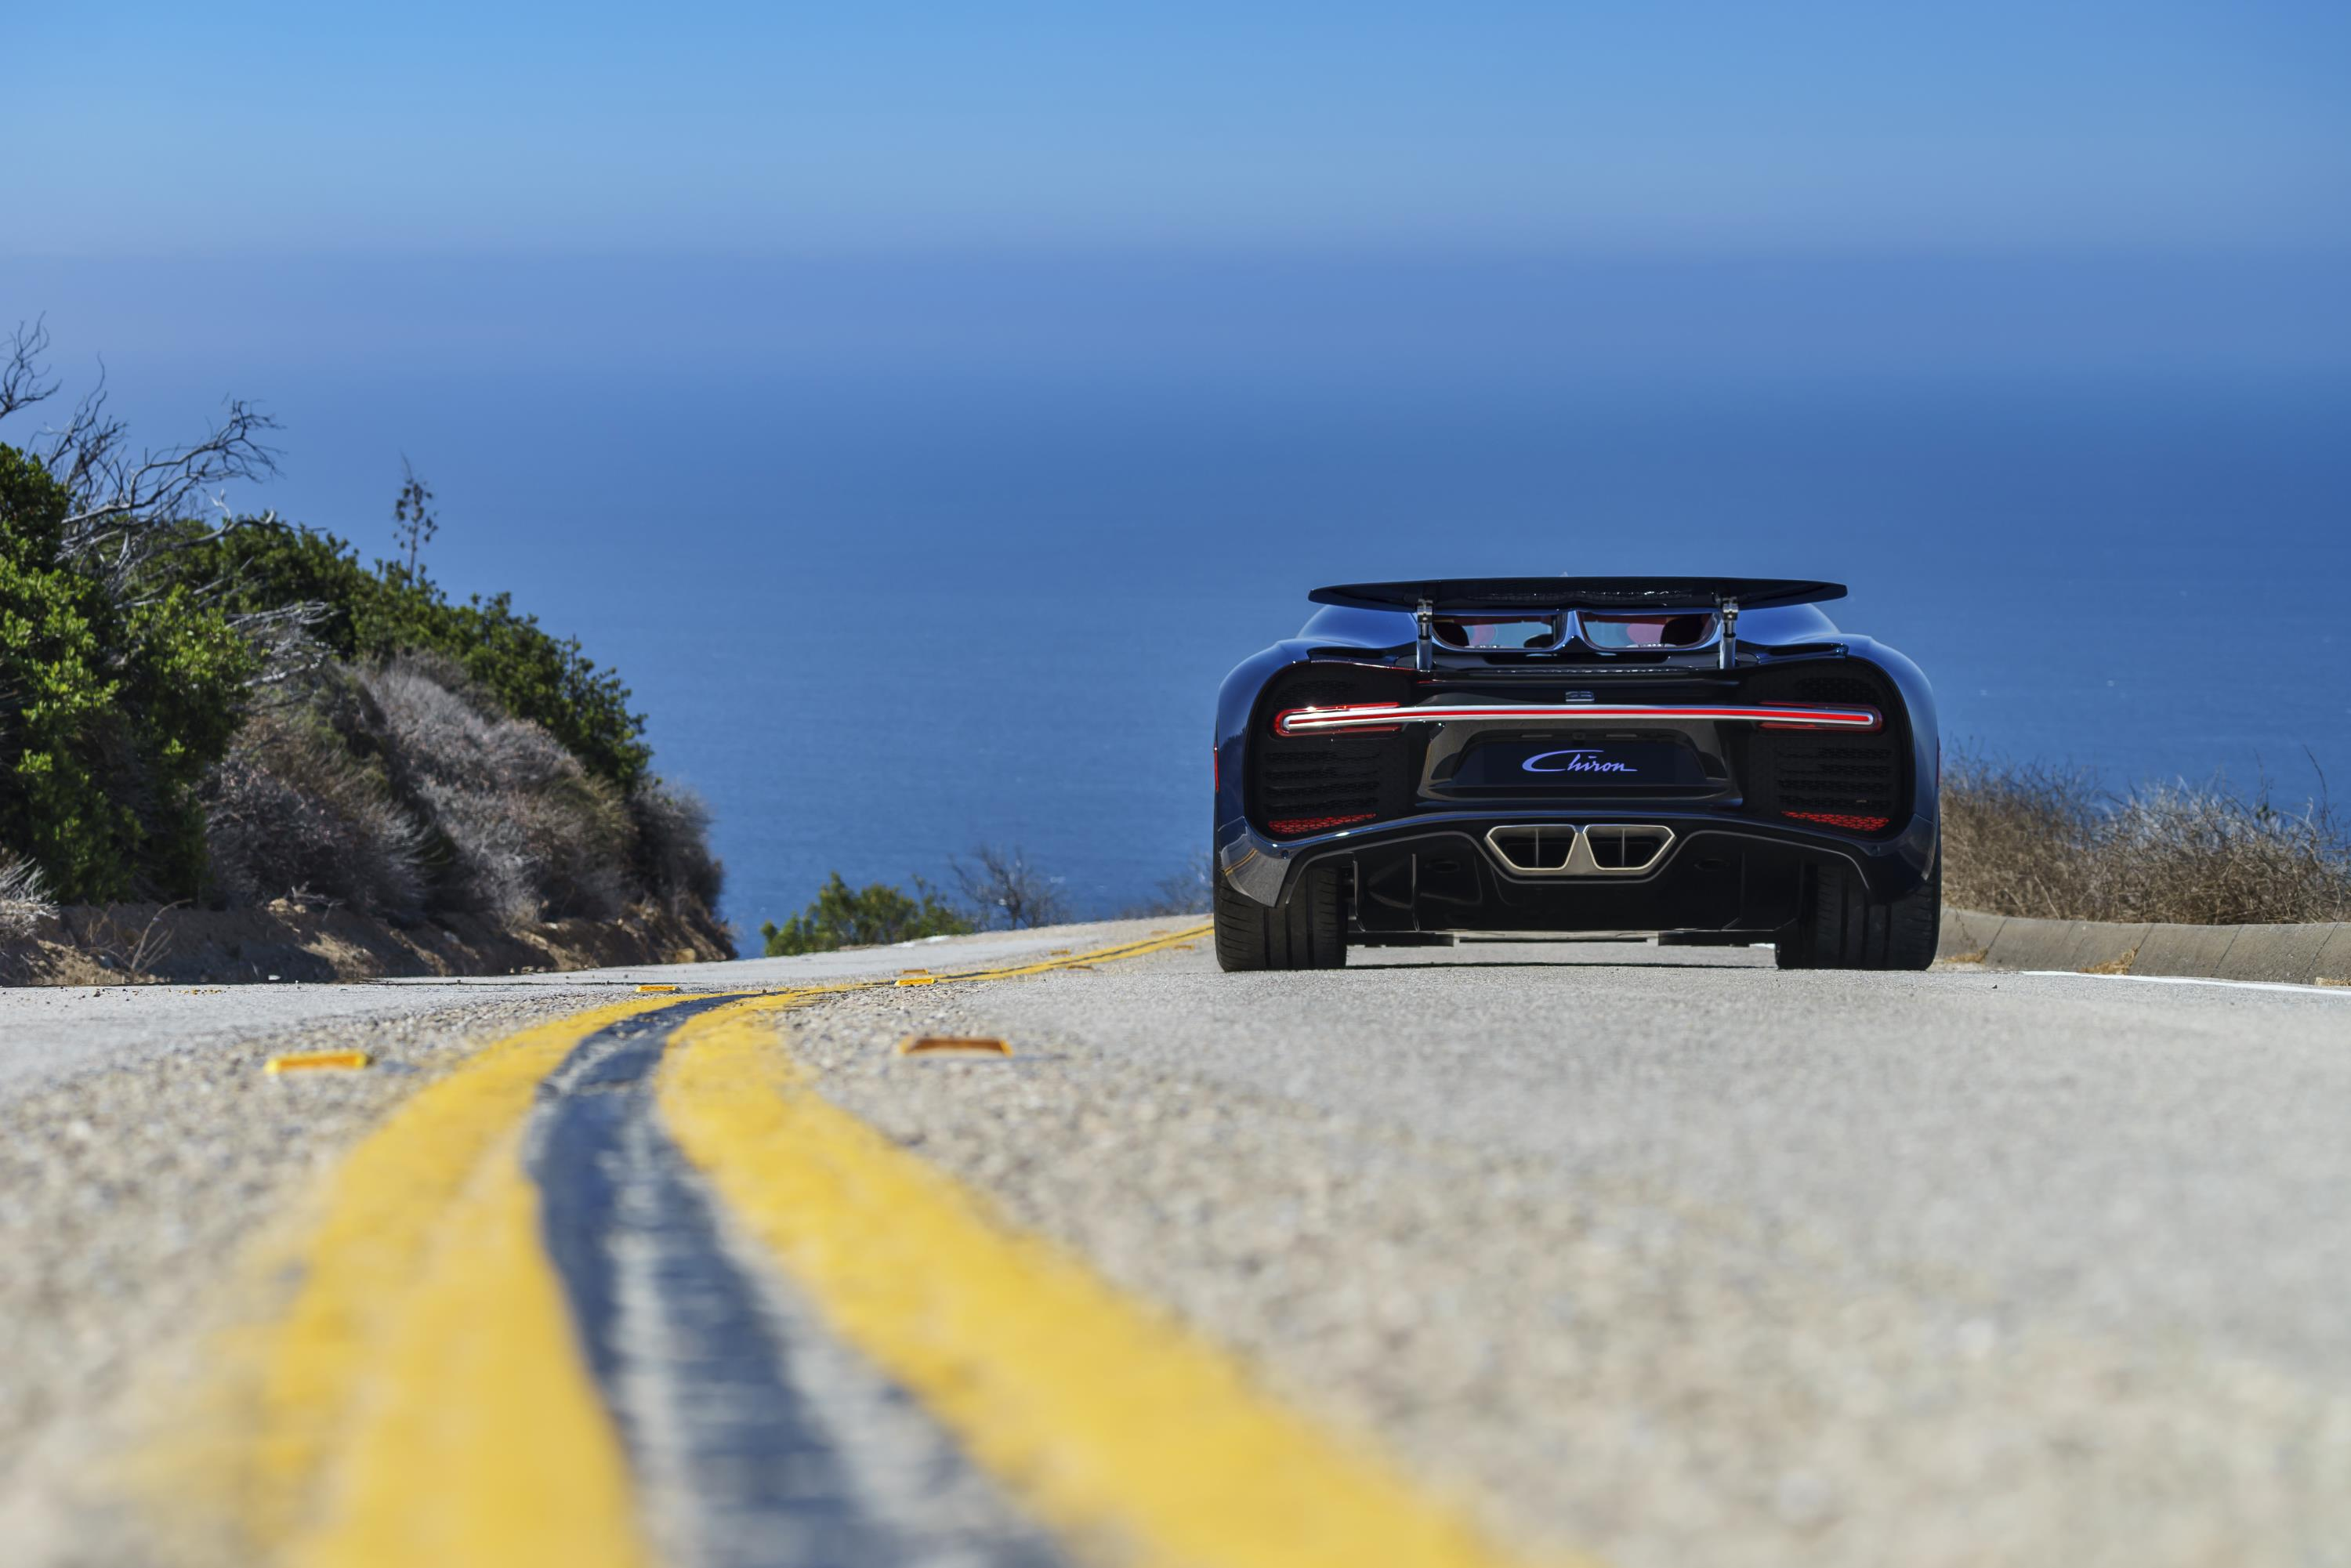 Bugatti Chiron Gas Mileage Is Bad, But Not Veyron Bad